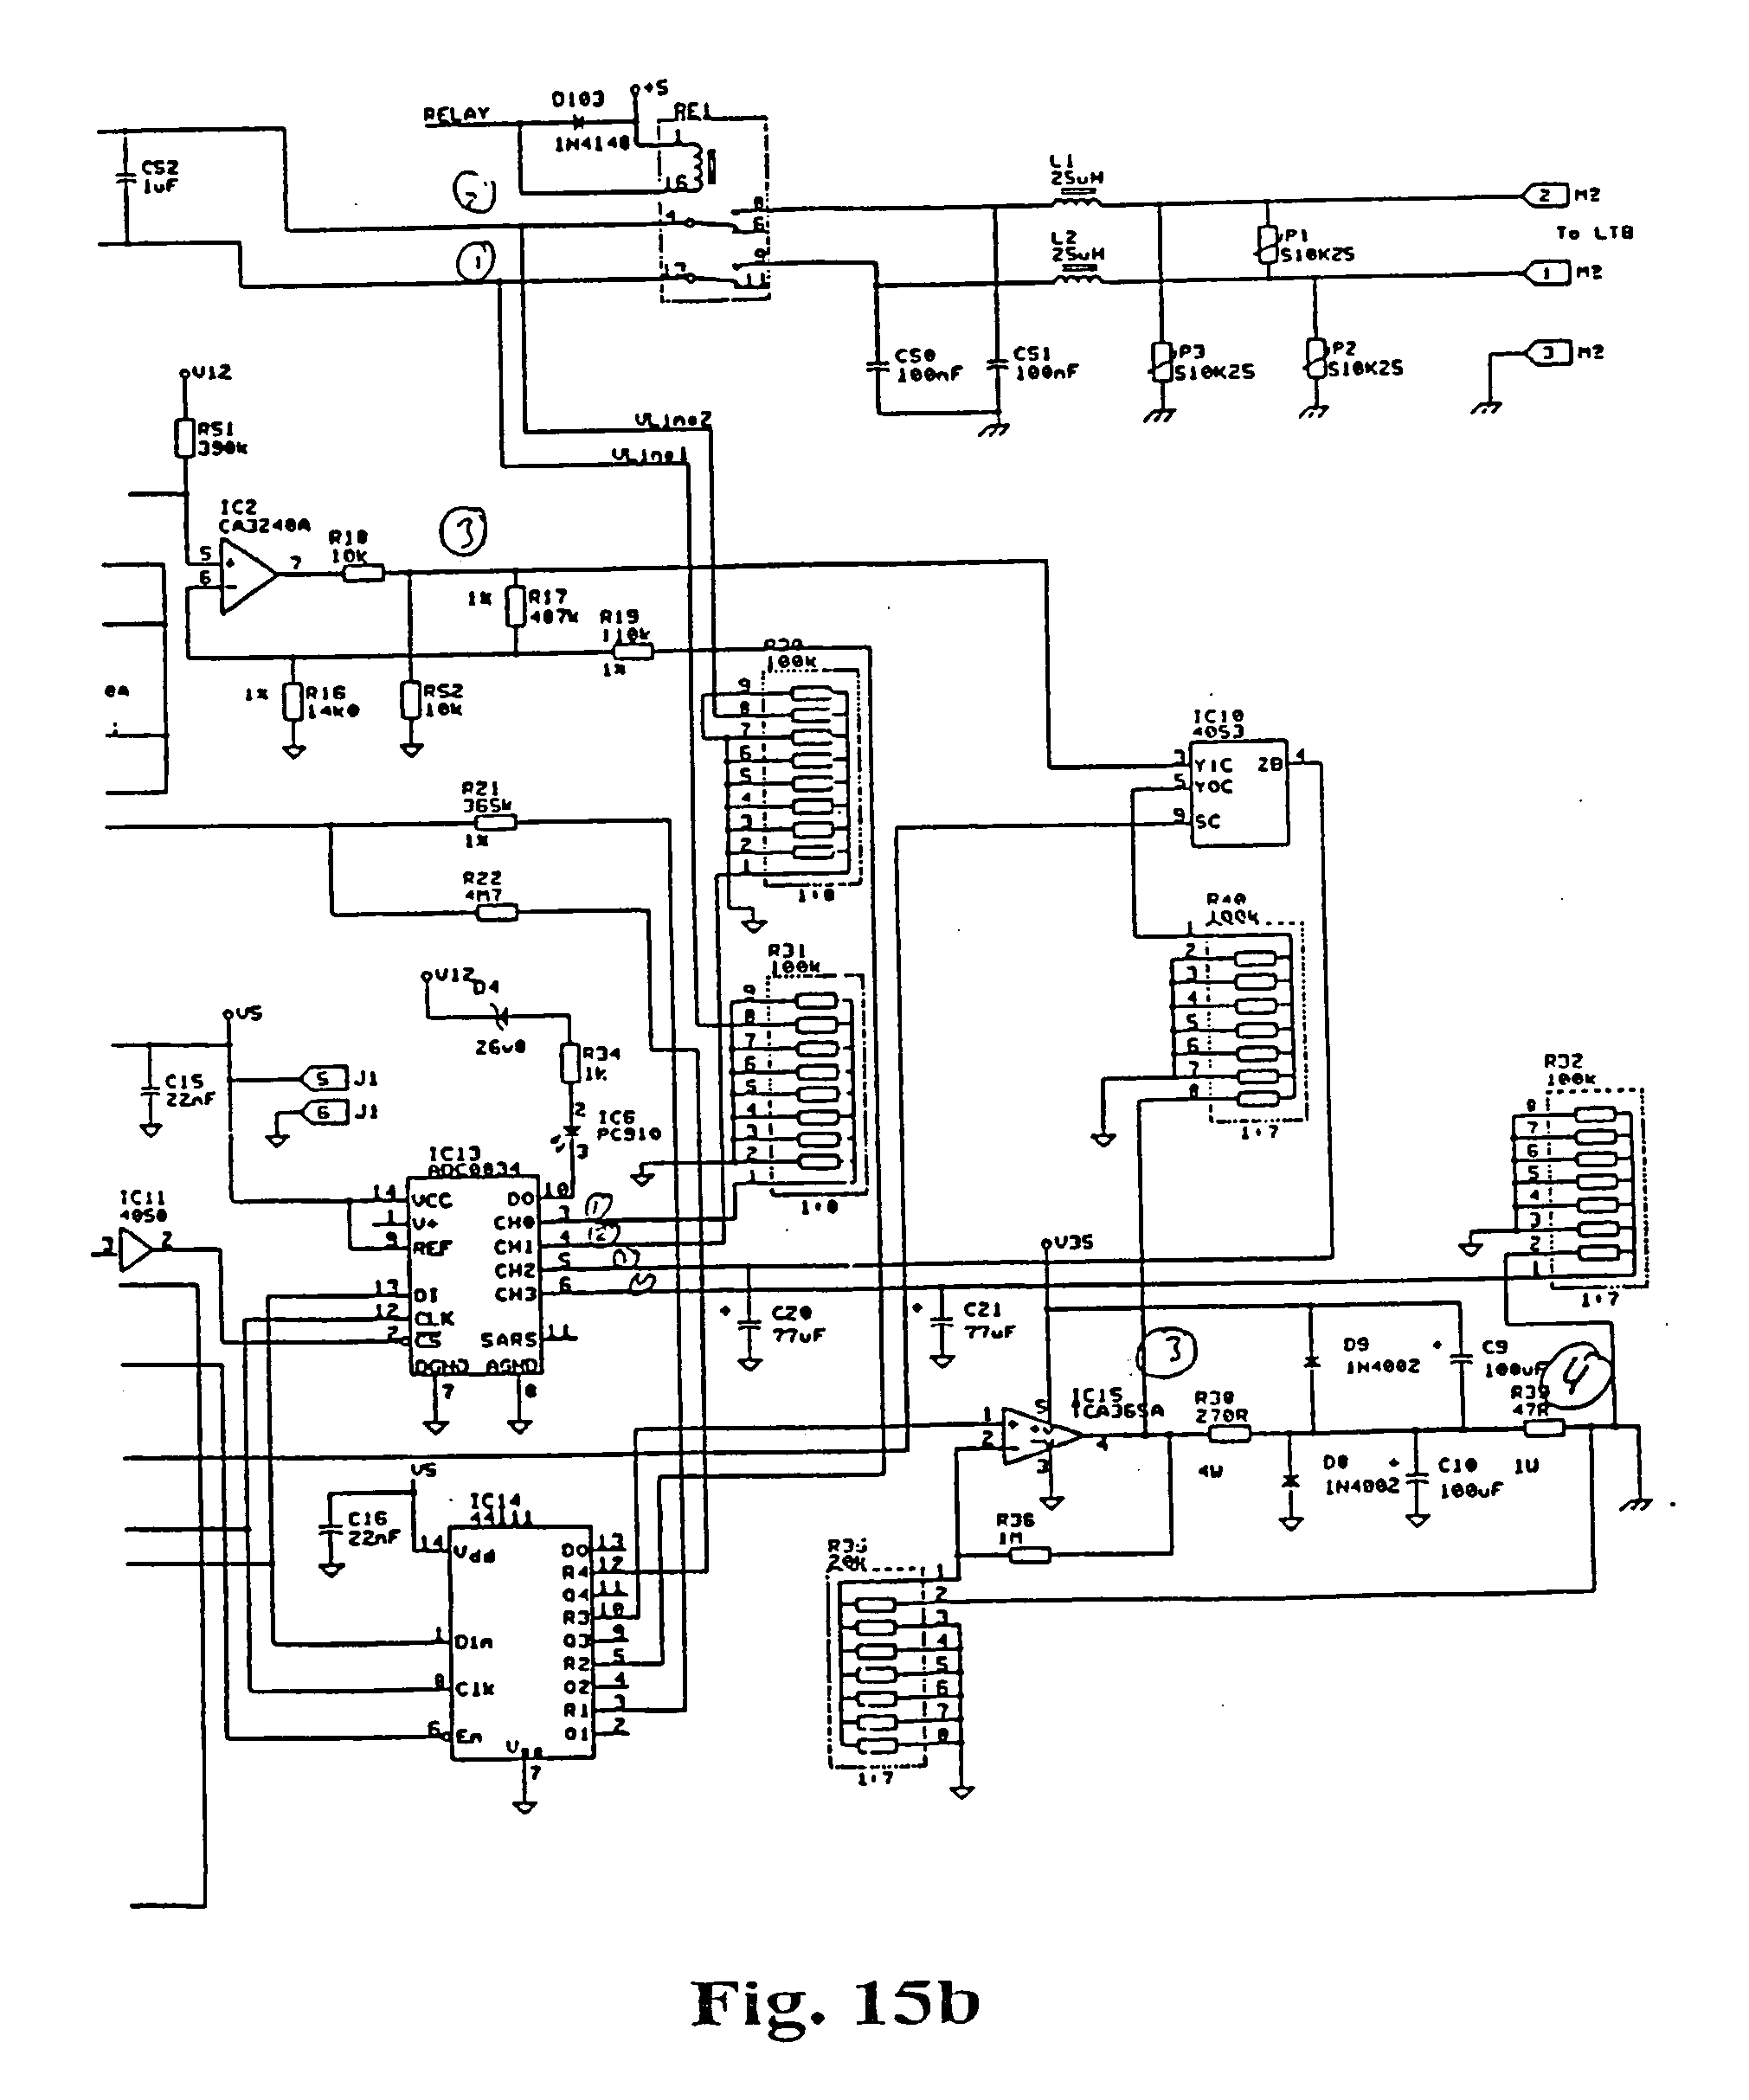 Light Kit Wiring Diagram together with A Pull Switch Light Wiring likewise Light Bulb Socket Cord as well Electric Shower Stopped Working as well Dryer repair chapter 2. on pull cord light switch wiring diagram